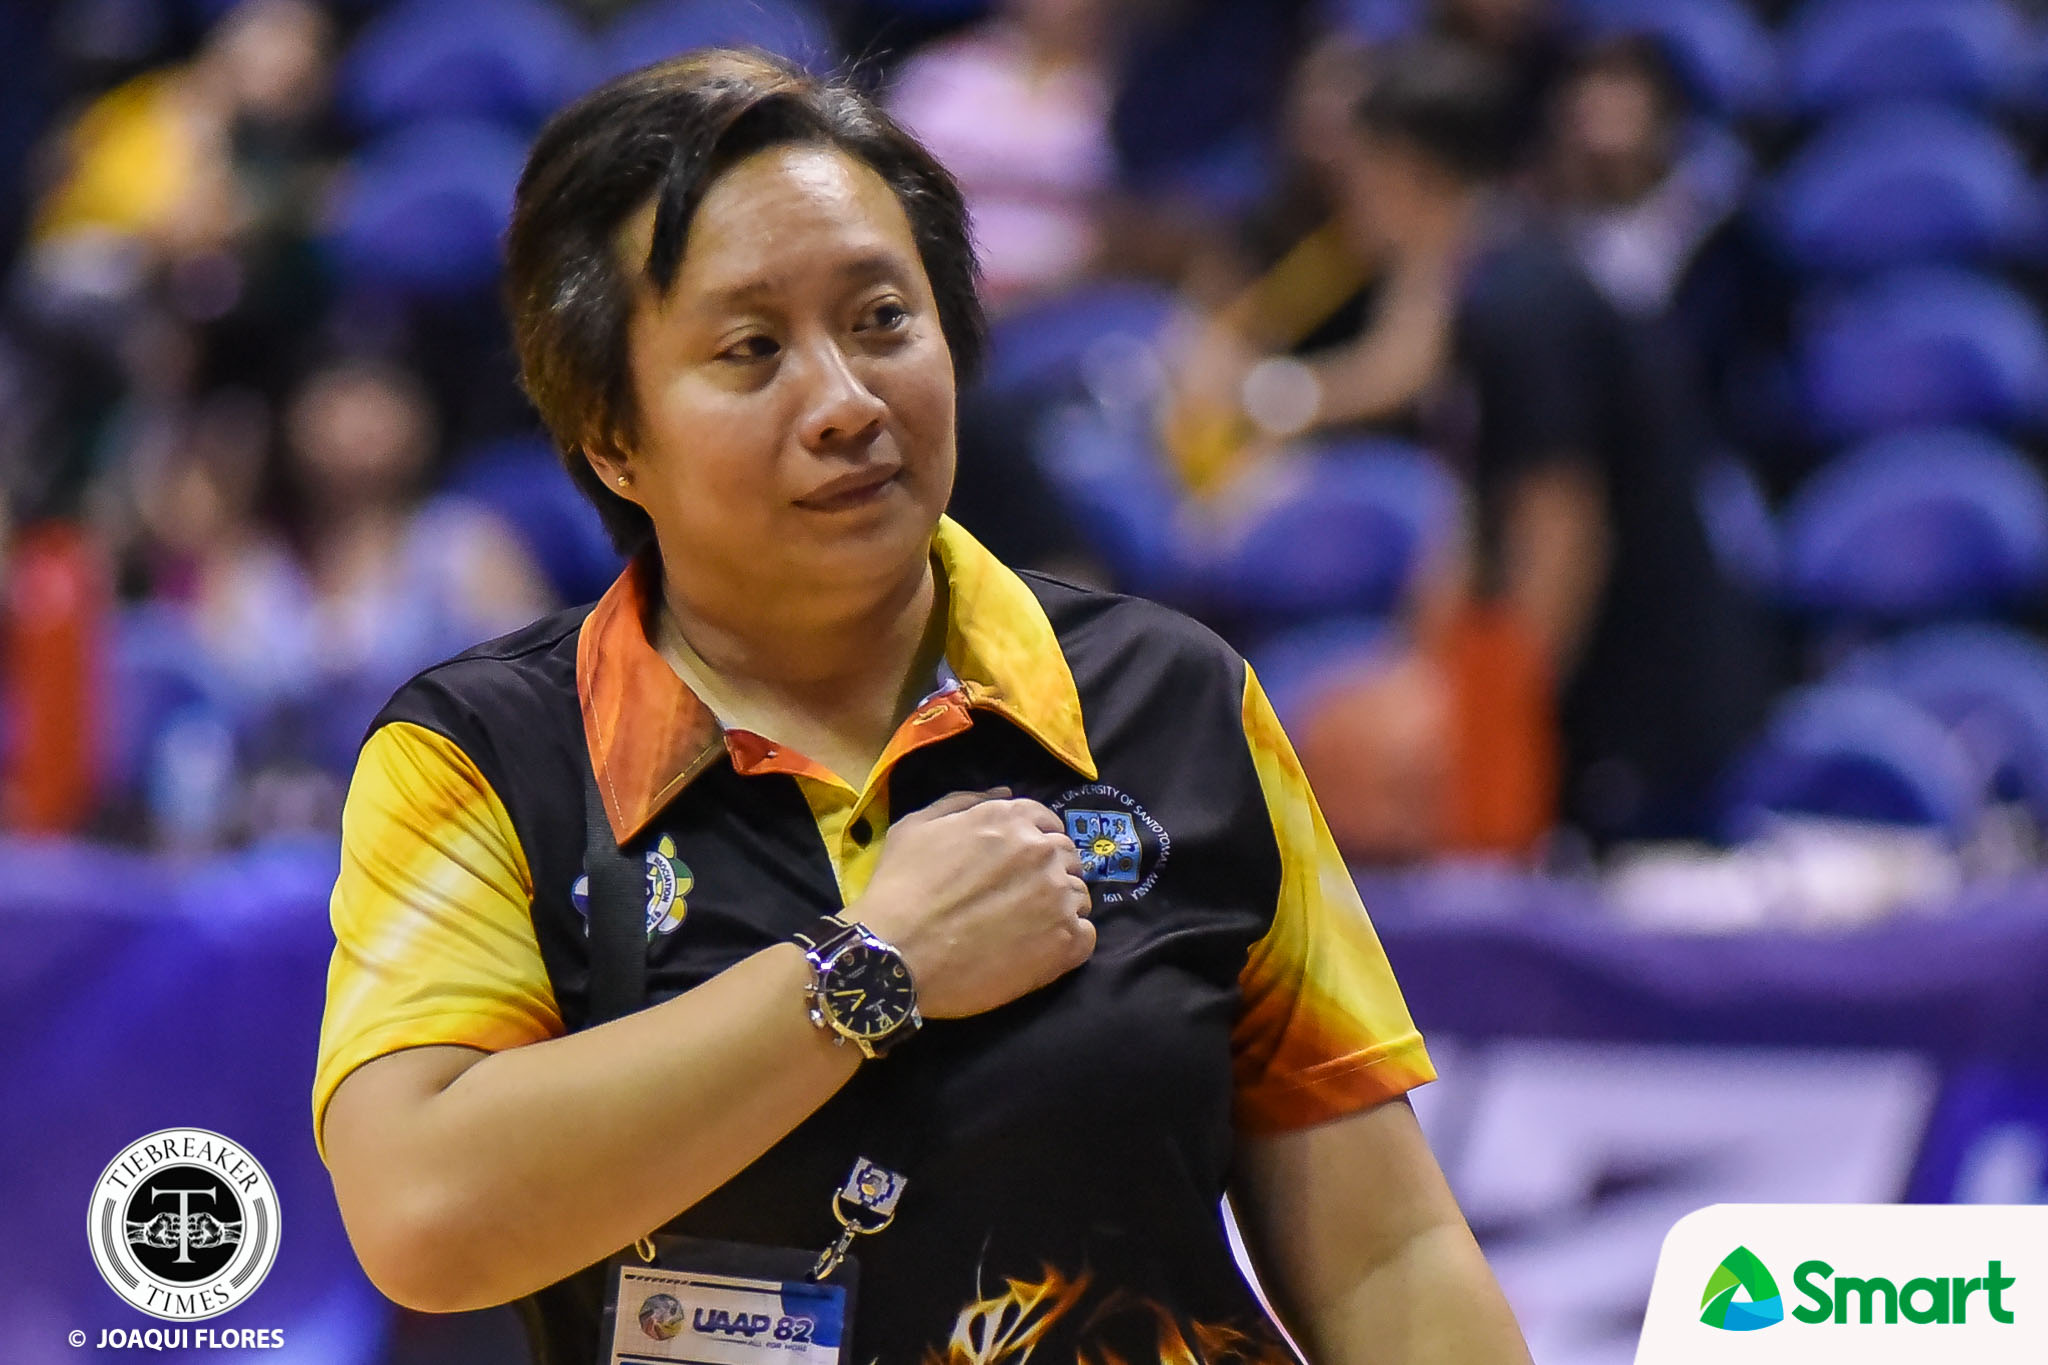 Tiebreaker Times Haydee Ong looks back on three-year odyssey with UST Basketball News UAAP UST  UST Women's Basketball UAAP Season 82 Women's Basketball UAAP Season 82 Haydee Ong